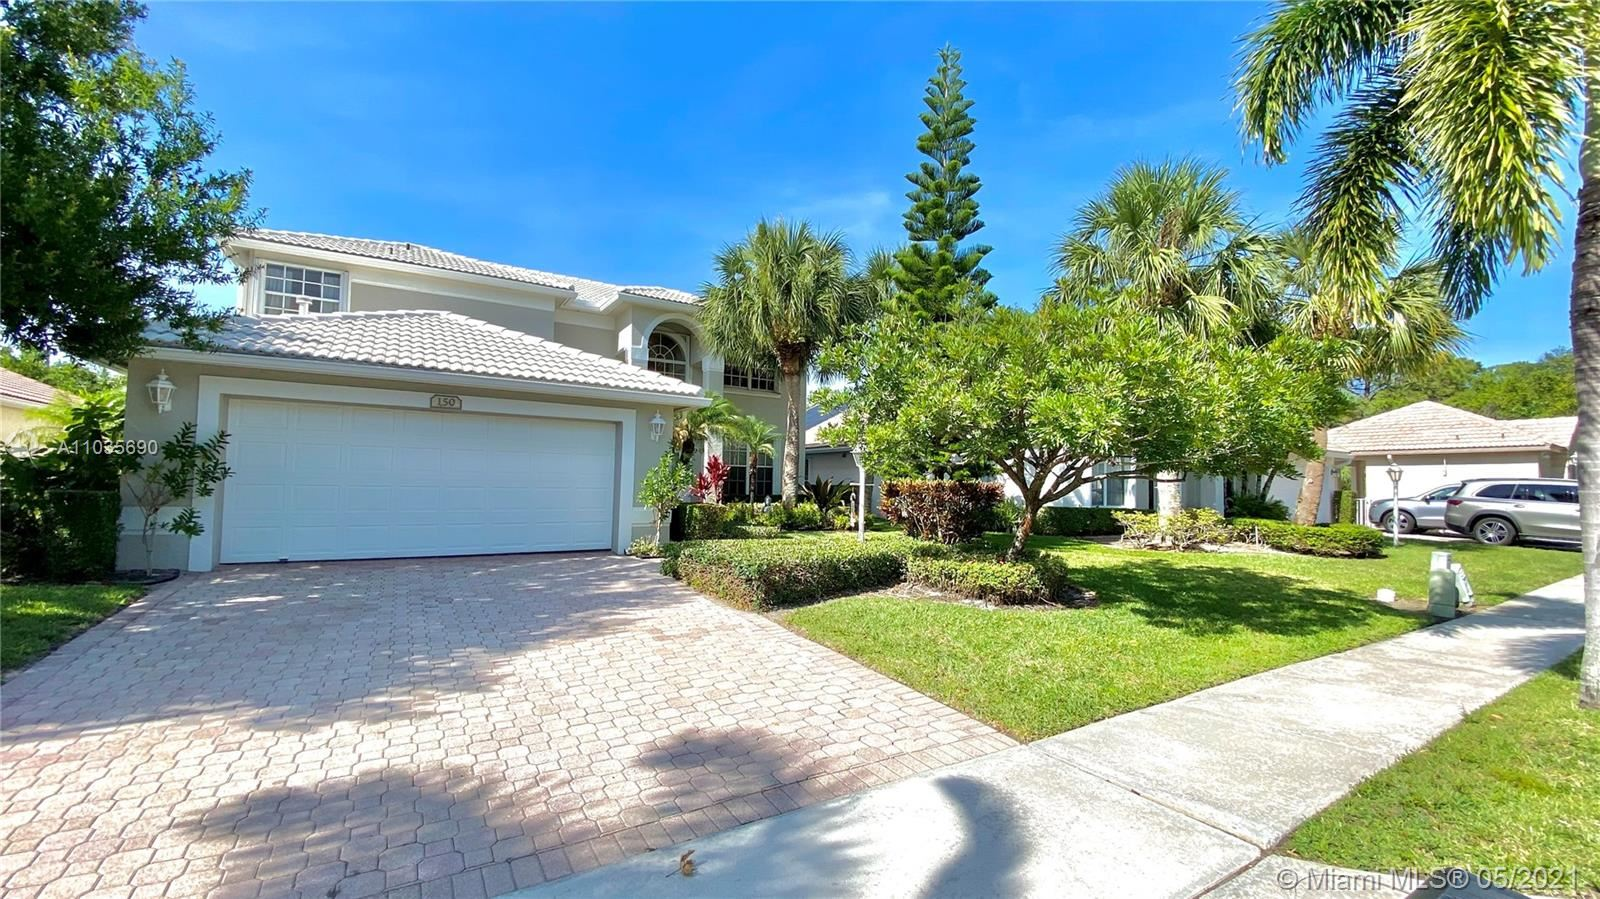 150 Jones Creek Dr, Jupiter, FL 33458 - #: A11035690